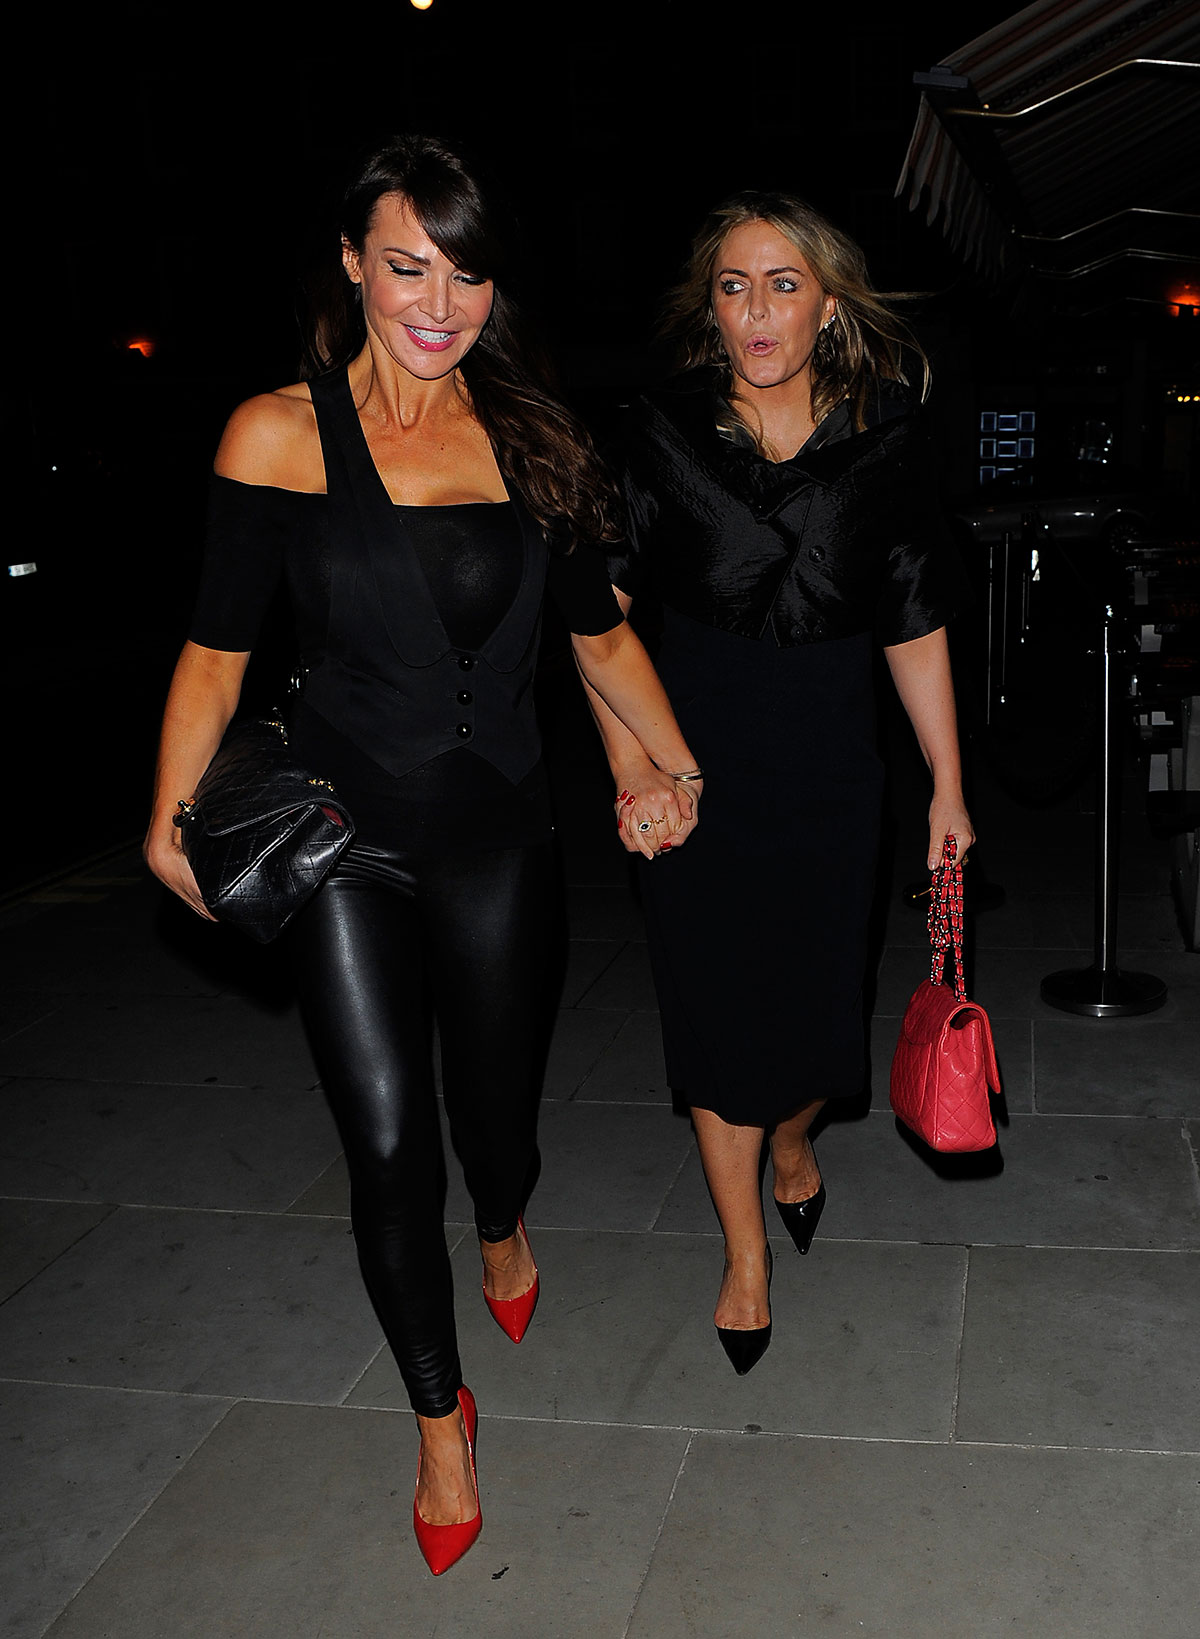 Lizzie Cundy at The Chiltern Firehouse in London